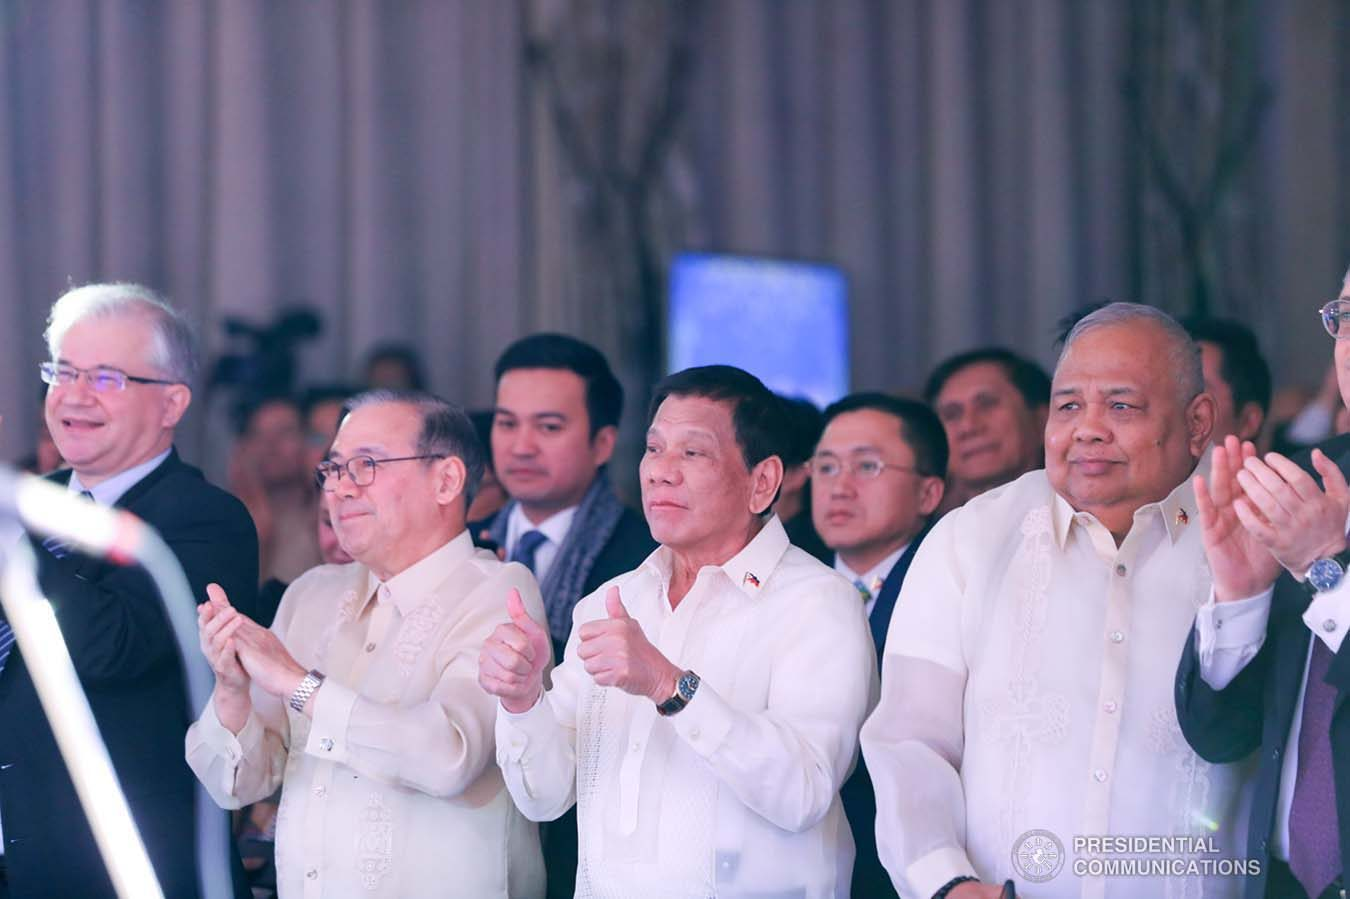 President Rodrigo Roa Duterte gives the thumbs up to the performers during the Philippine Cultural Gala Performance at the Four Seasons Hotel in Moscow, Russian Federation on October 4, 2019. ALFRED FRIAS/PRESIDENTIAL PHOTO